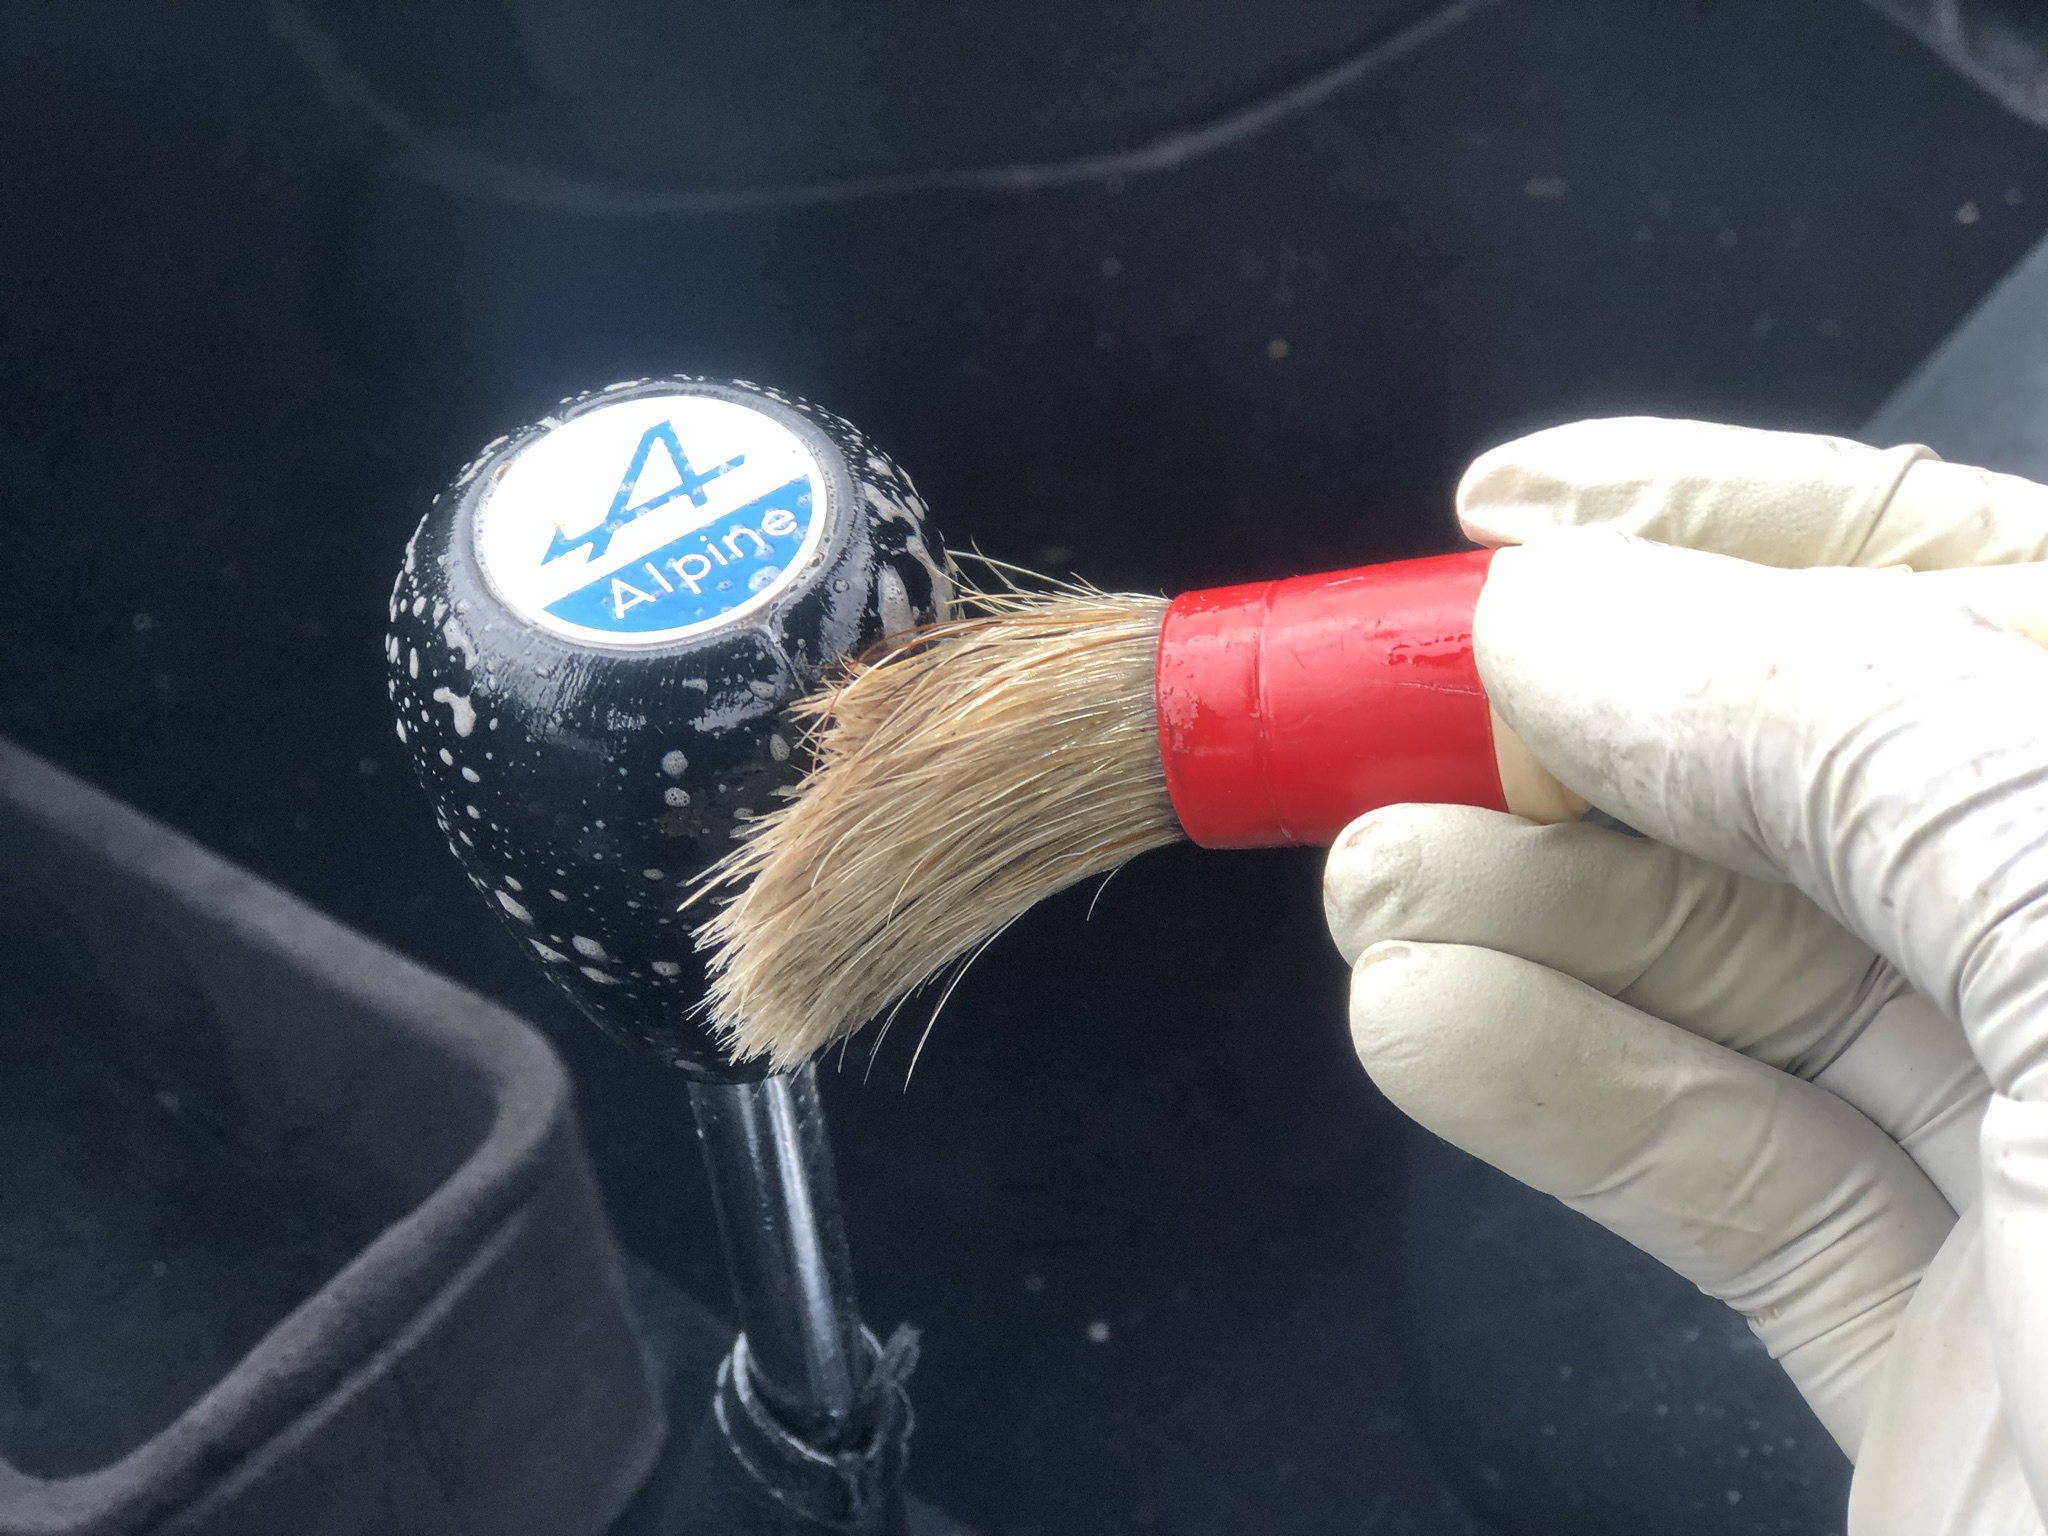 Cleaning Leather Shift Nob On Car.JPEG